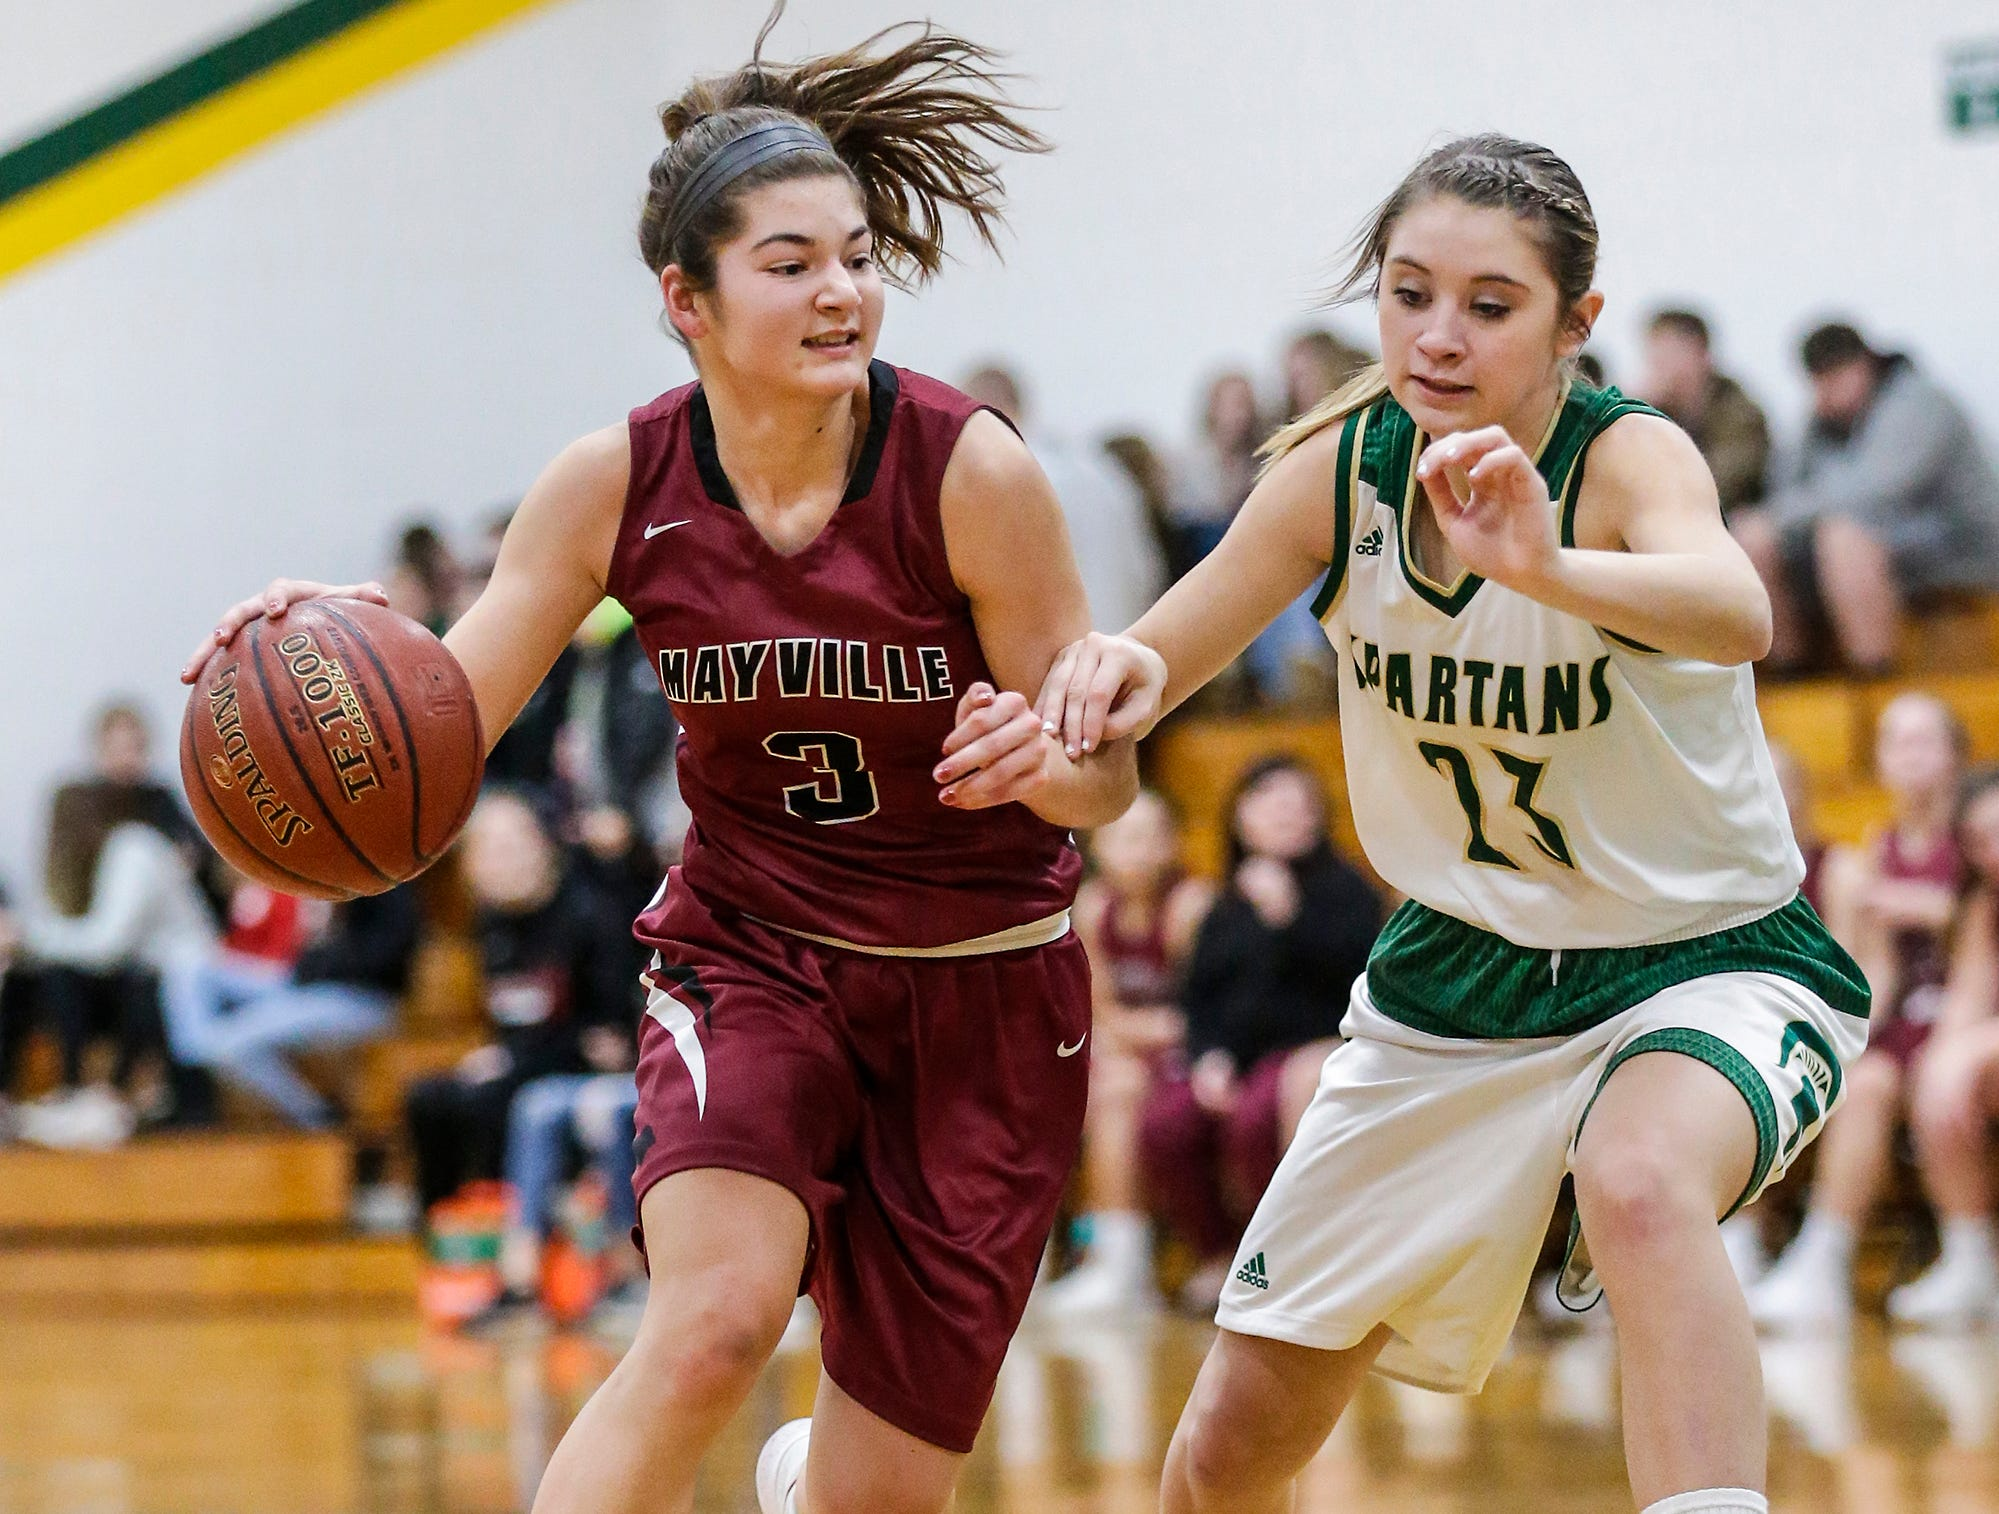 Mayville High School girls basketball's Amber Schraufnagel works her way down the court while being defended by Laconia High School's Harper Wurtz during their game Friday, November 30, 2018 in Rosendale. Doug Raflik/USA TODAY NETWORK-Wisconsin